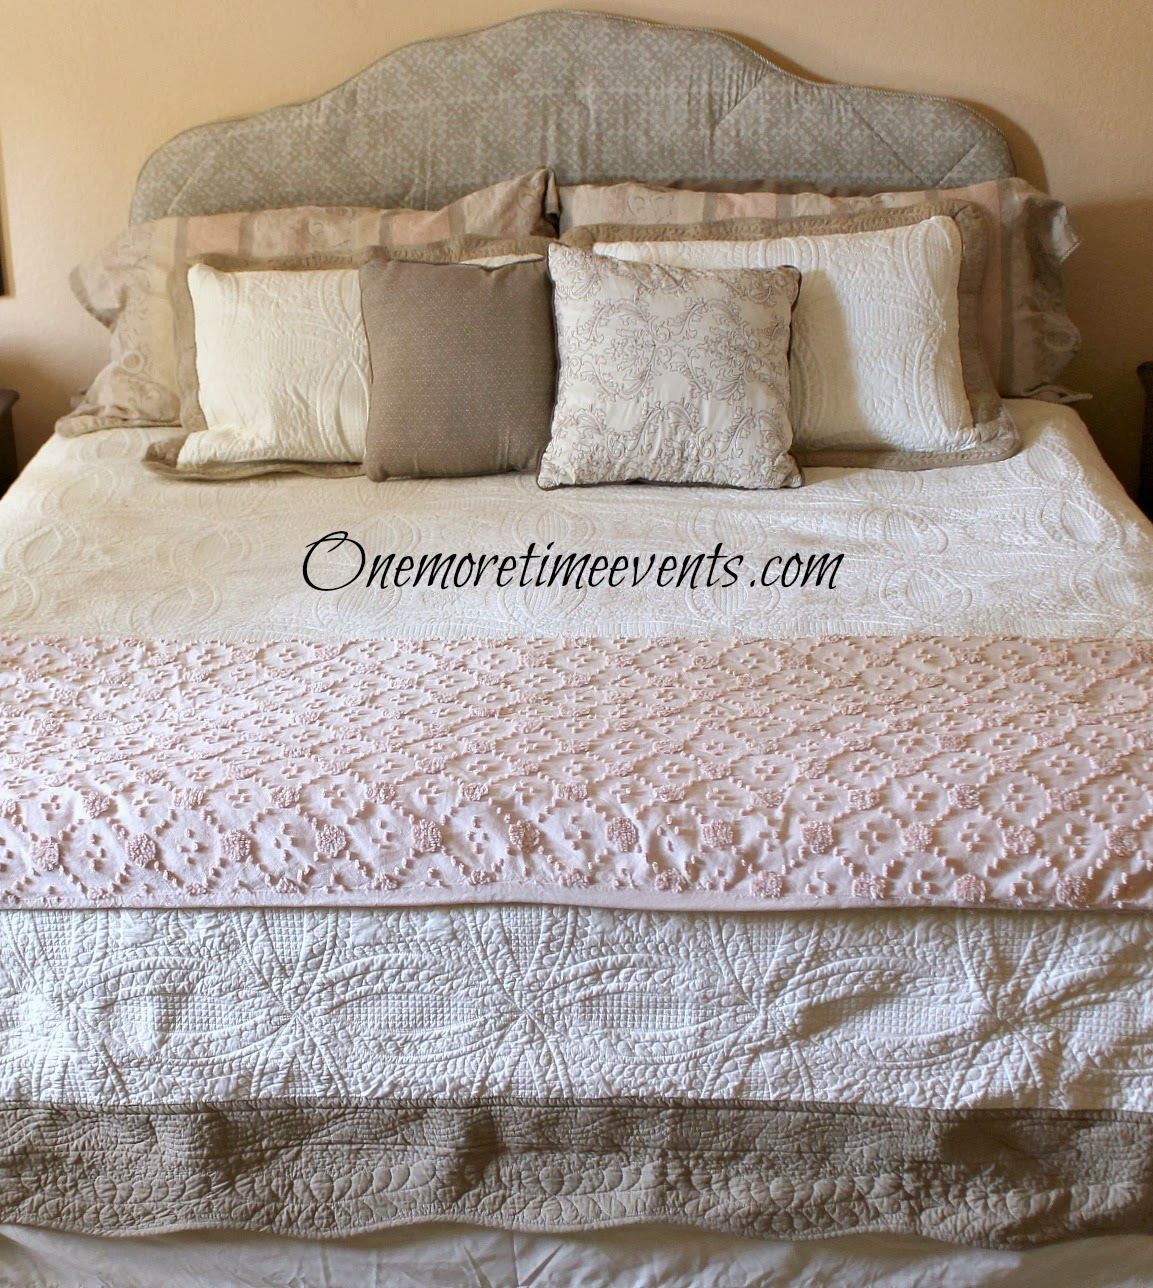 Master bedroom budget makeover at One More Time Events.com